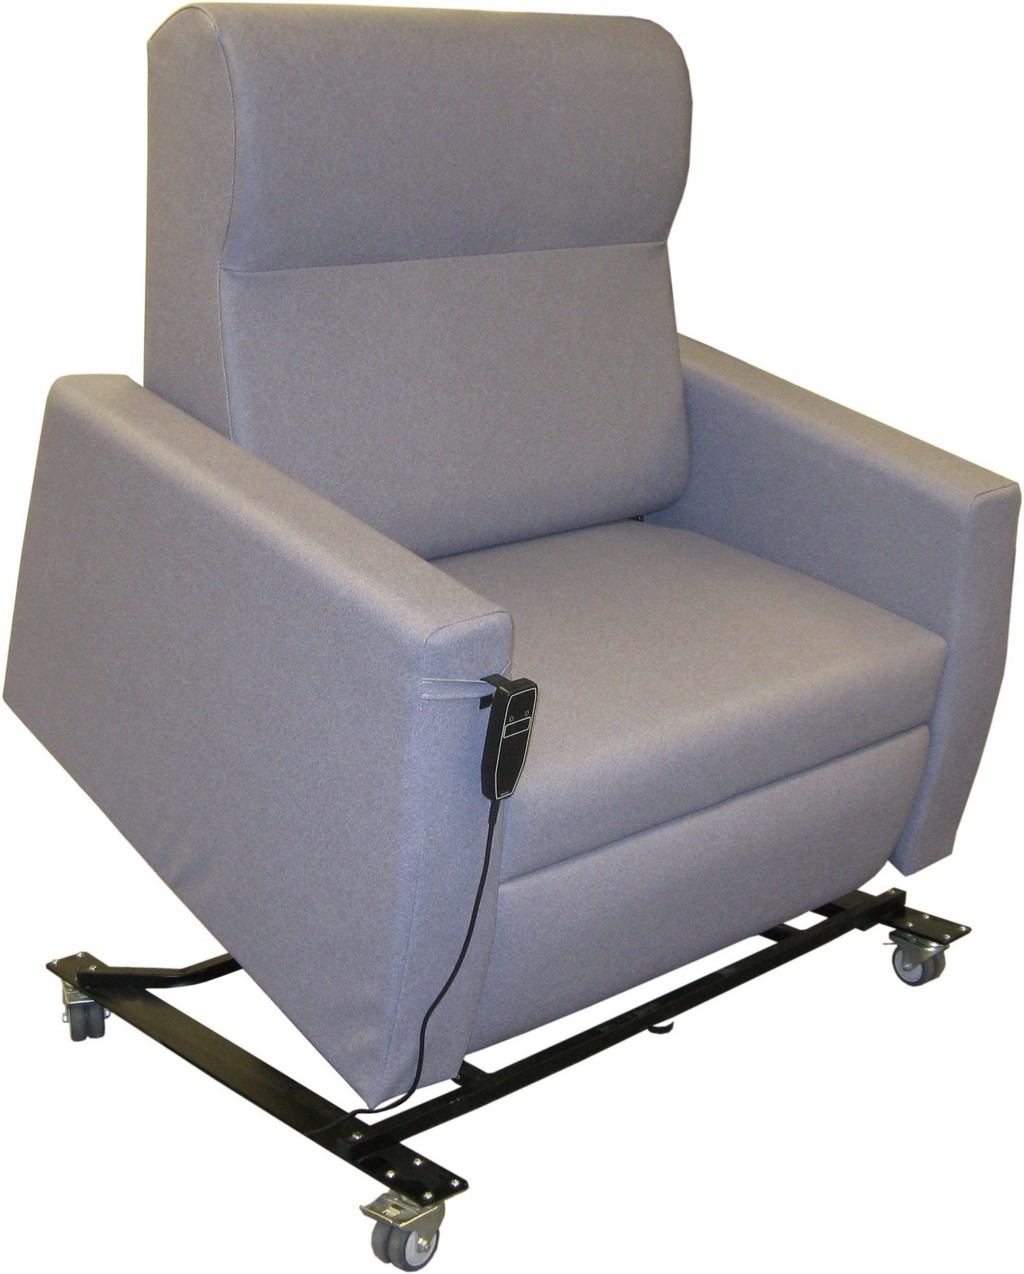 lift chairs, lift chairs for elderly, reclining lift chair, golden lift chairs